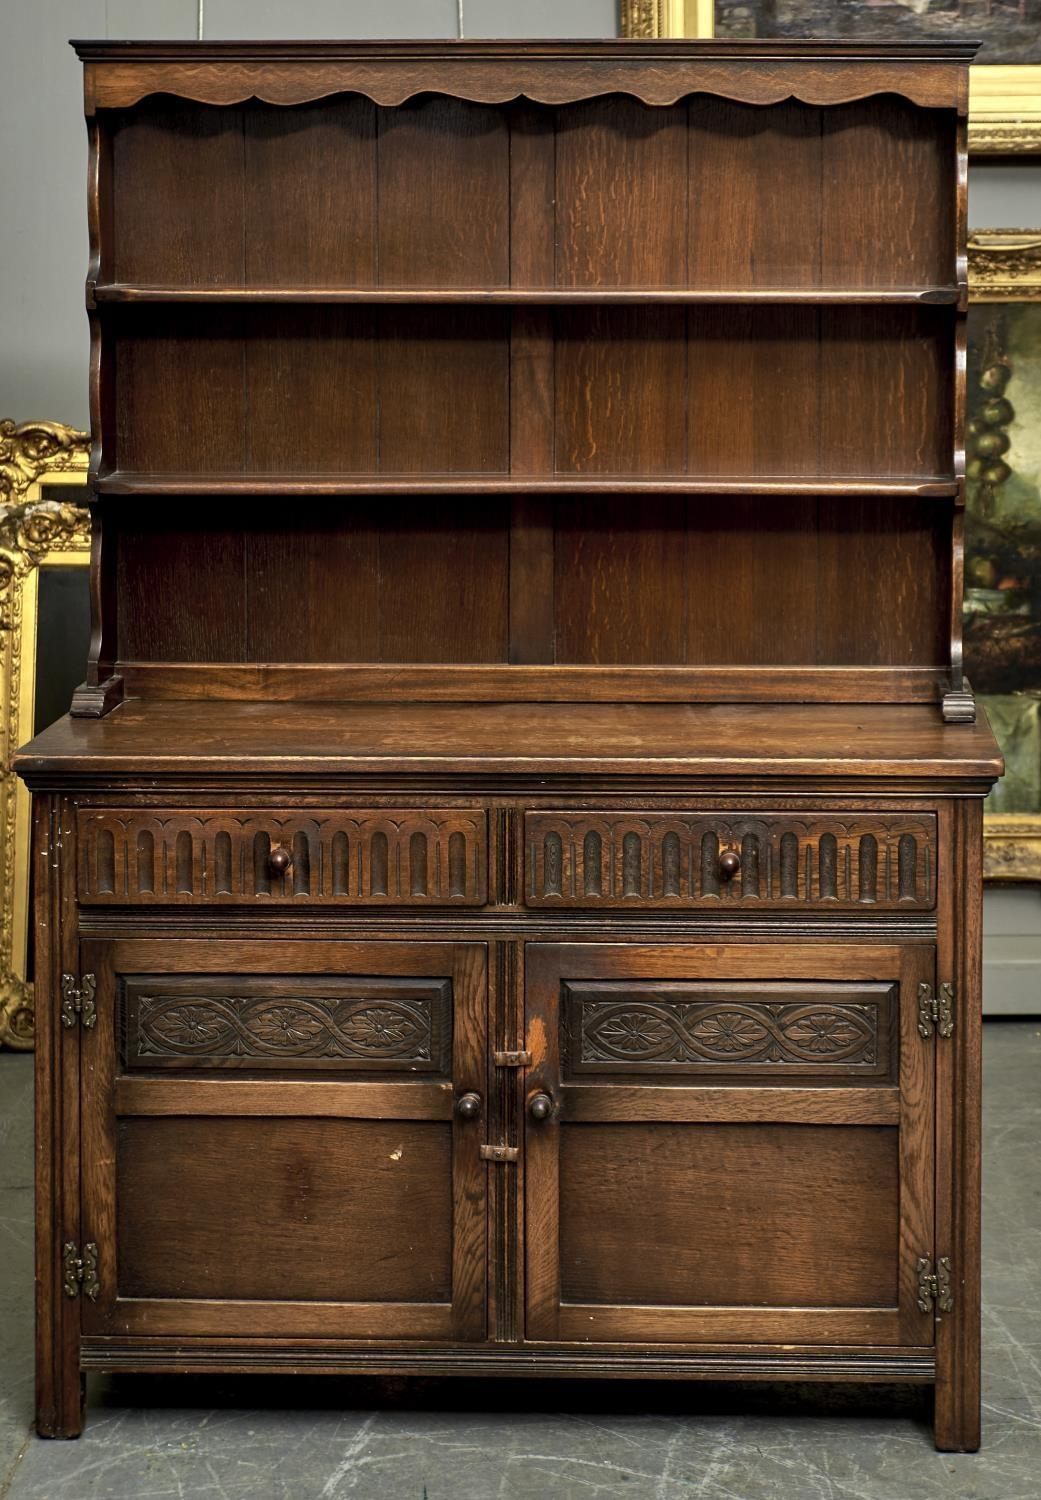 A REPRODUCTION OAK DRESSER IN SHALLOWED CORNICE, SHAPED FRIEZE, SHELVED BACK, THE PROJECTING BASE